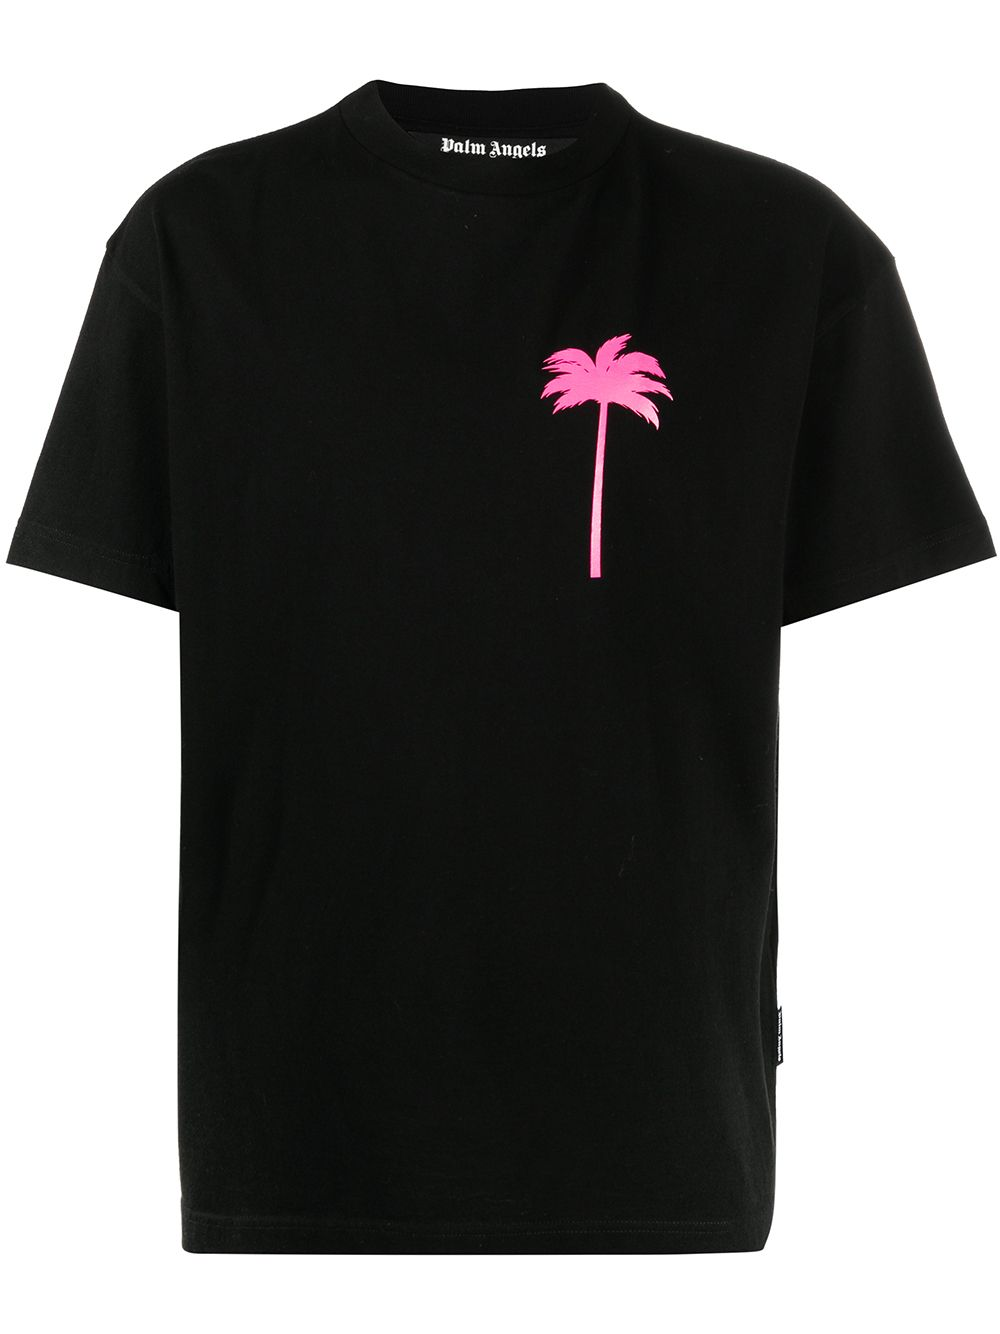 <p class='small-title'>PALM ANGELS</p>T-shirt